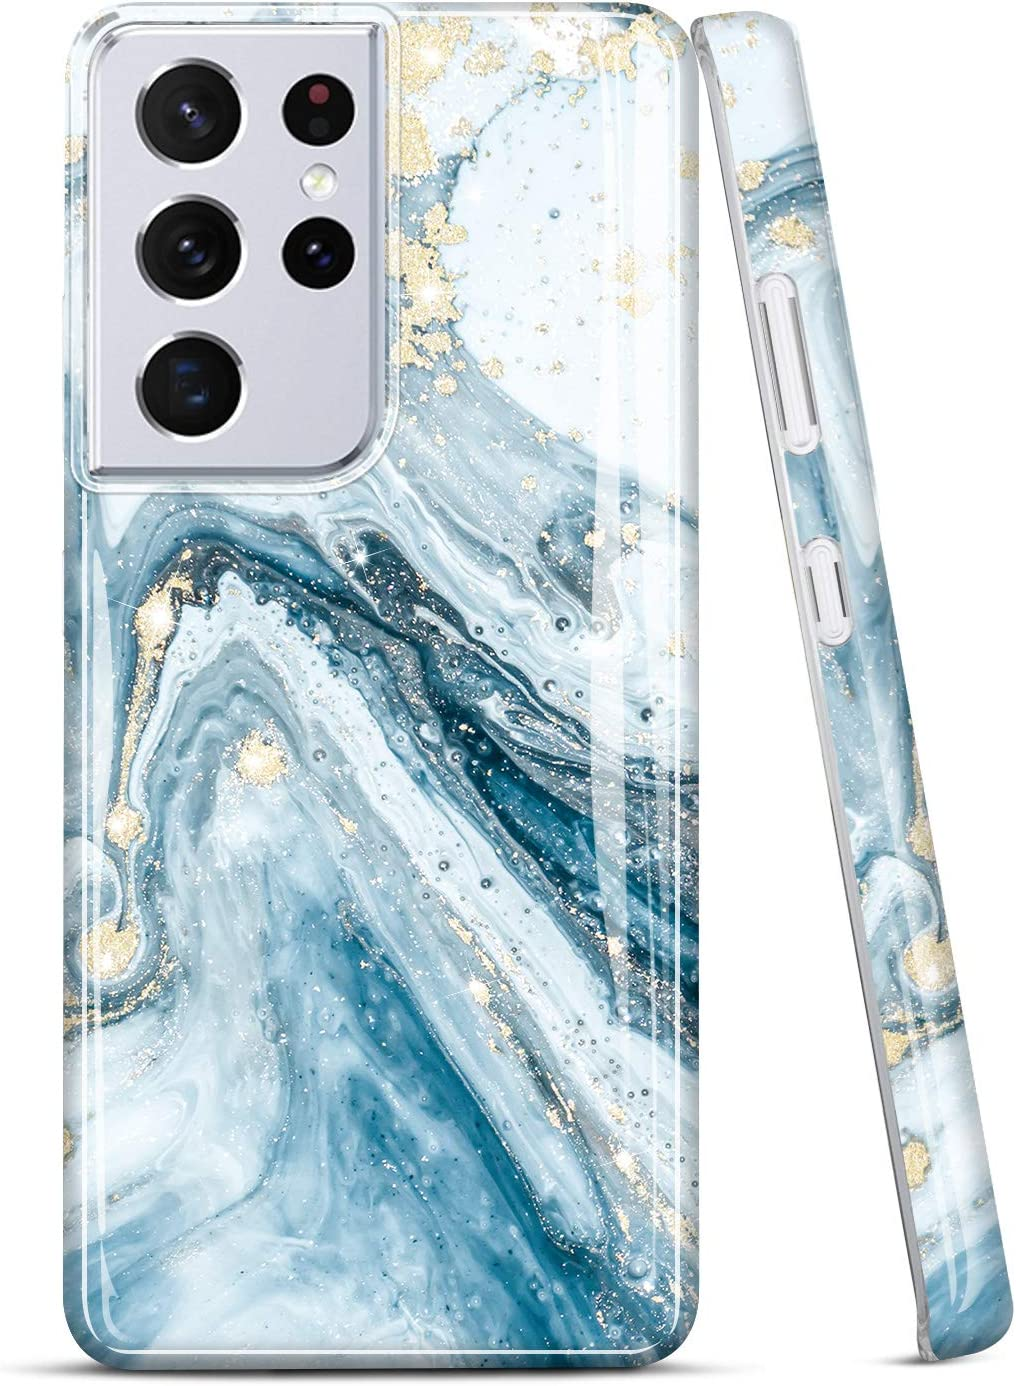 JIAXIUFEN Galaxy S21 Ultra Case Gold Sparkle Glitter Marble Slim Shockproof TPU Soft Rubber Silicone Cover Phone Case for Samsung Galaxy S21 Ultra 5G 6.8 inch 2021 Blue